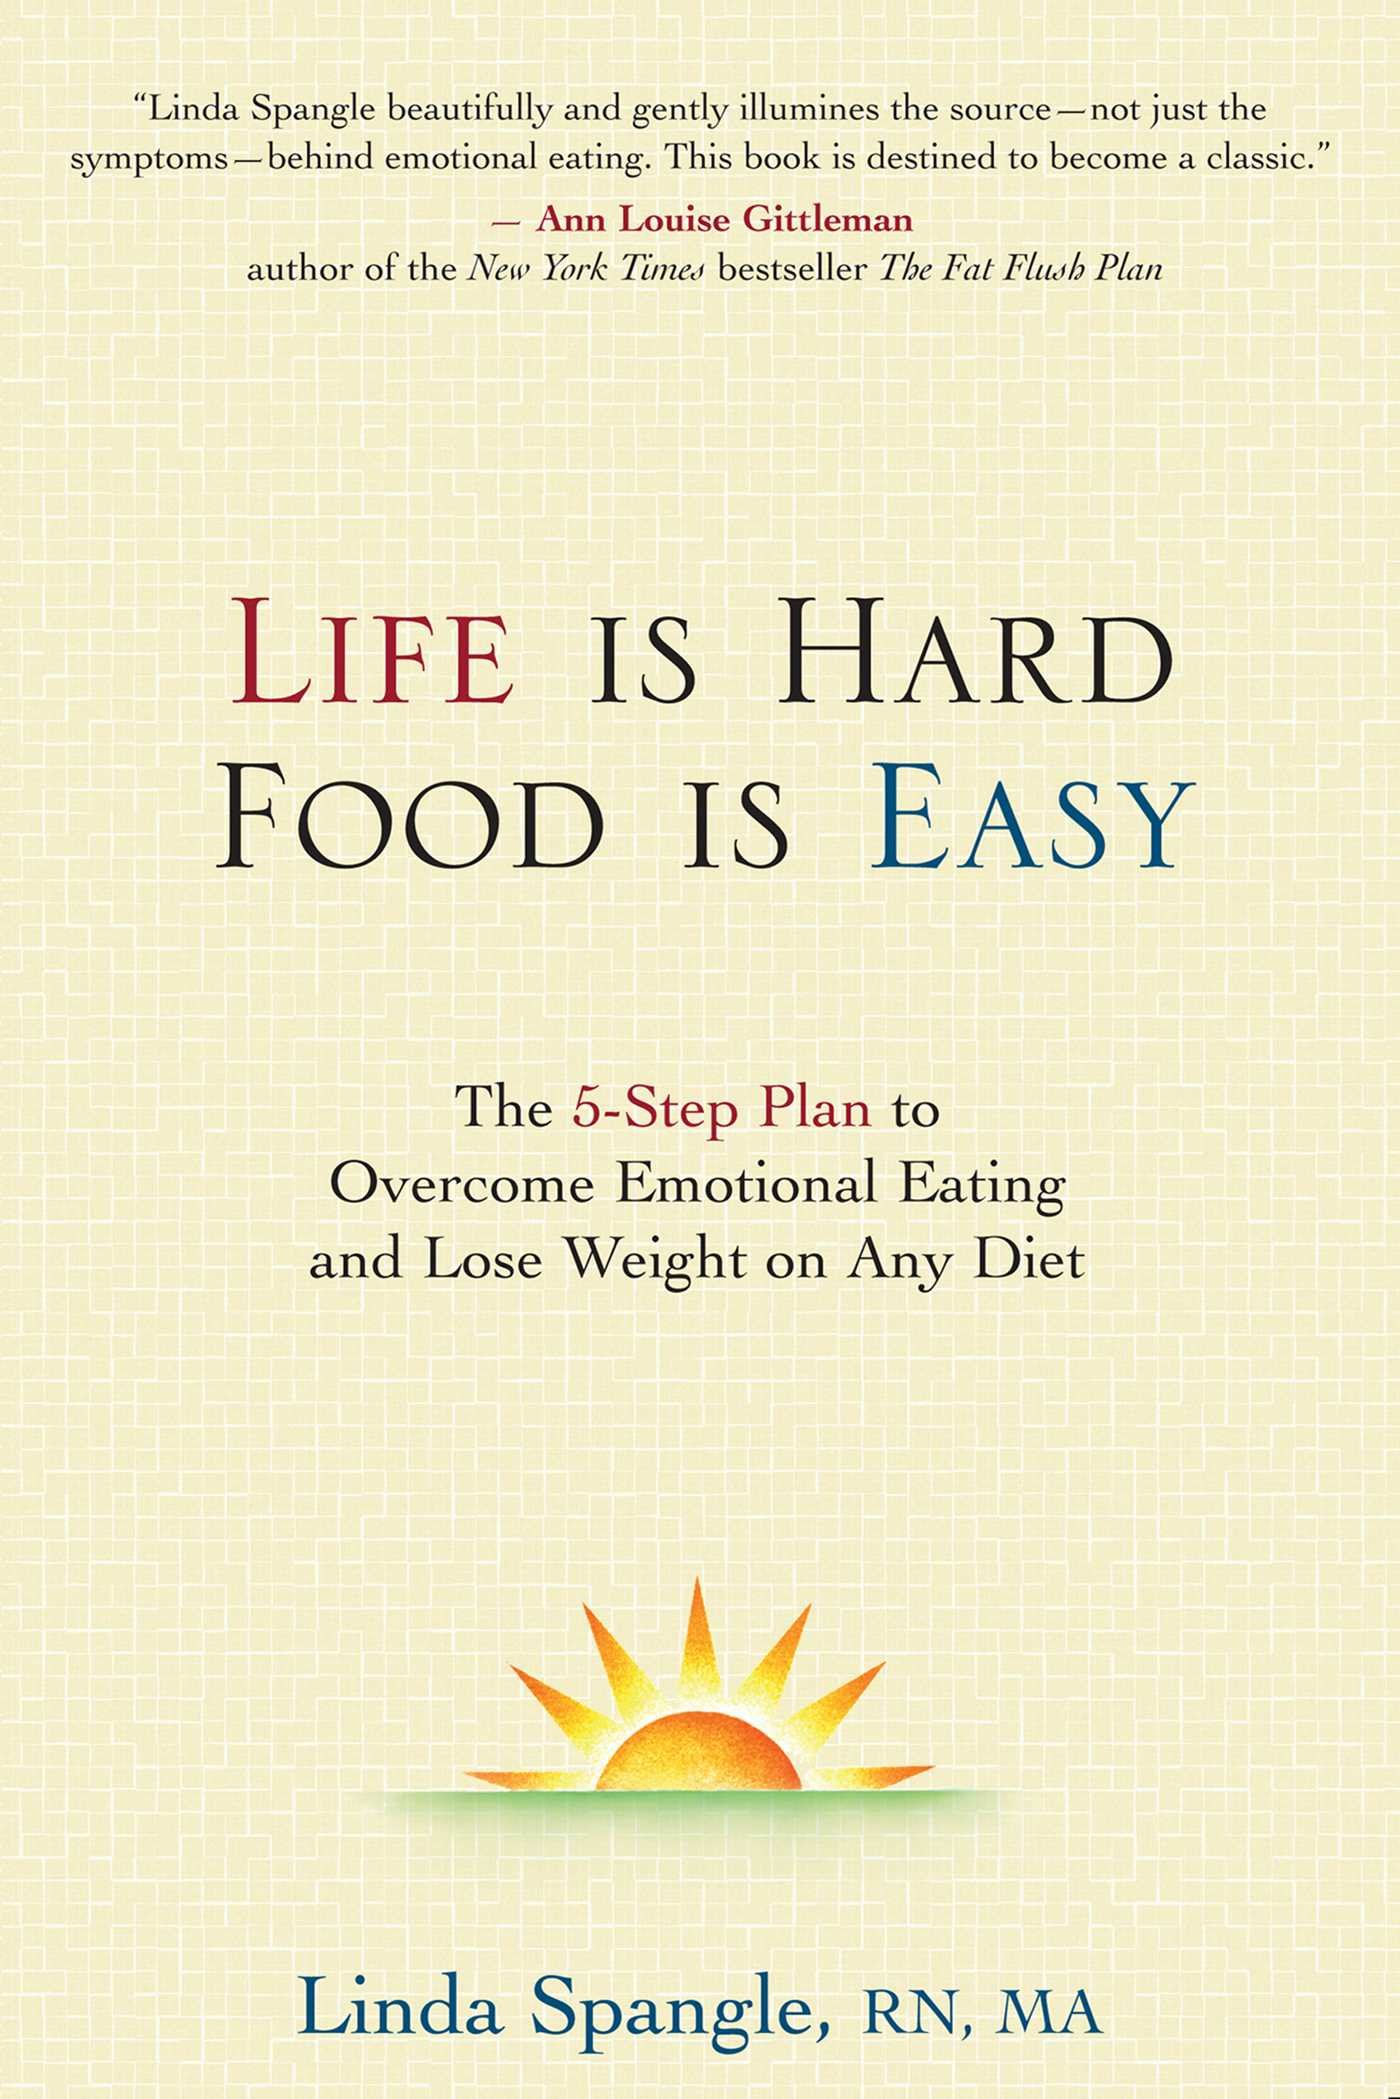 Download Life is Hard, Food is Easy: The 5-Step Plan to Overcome Emotional Eating and Lose Weight on Any Diet pdf